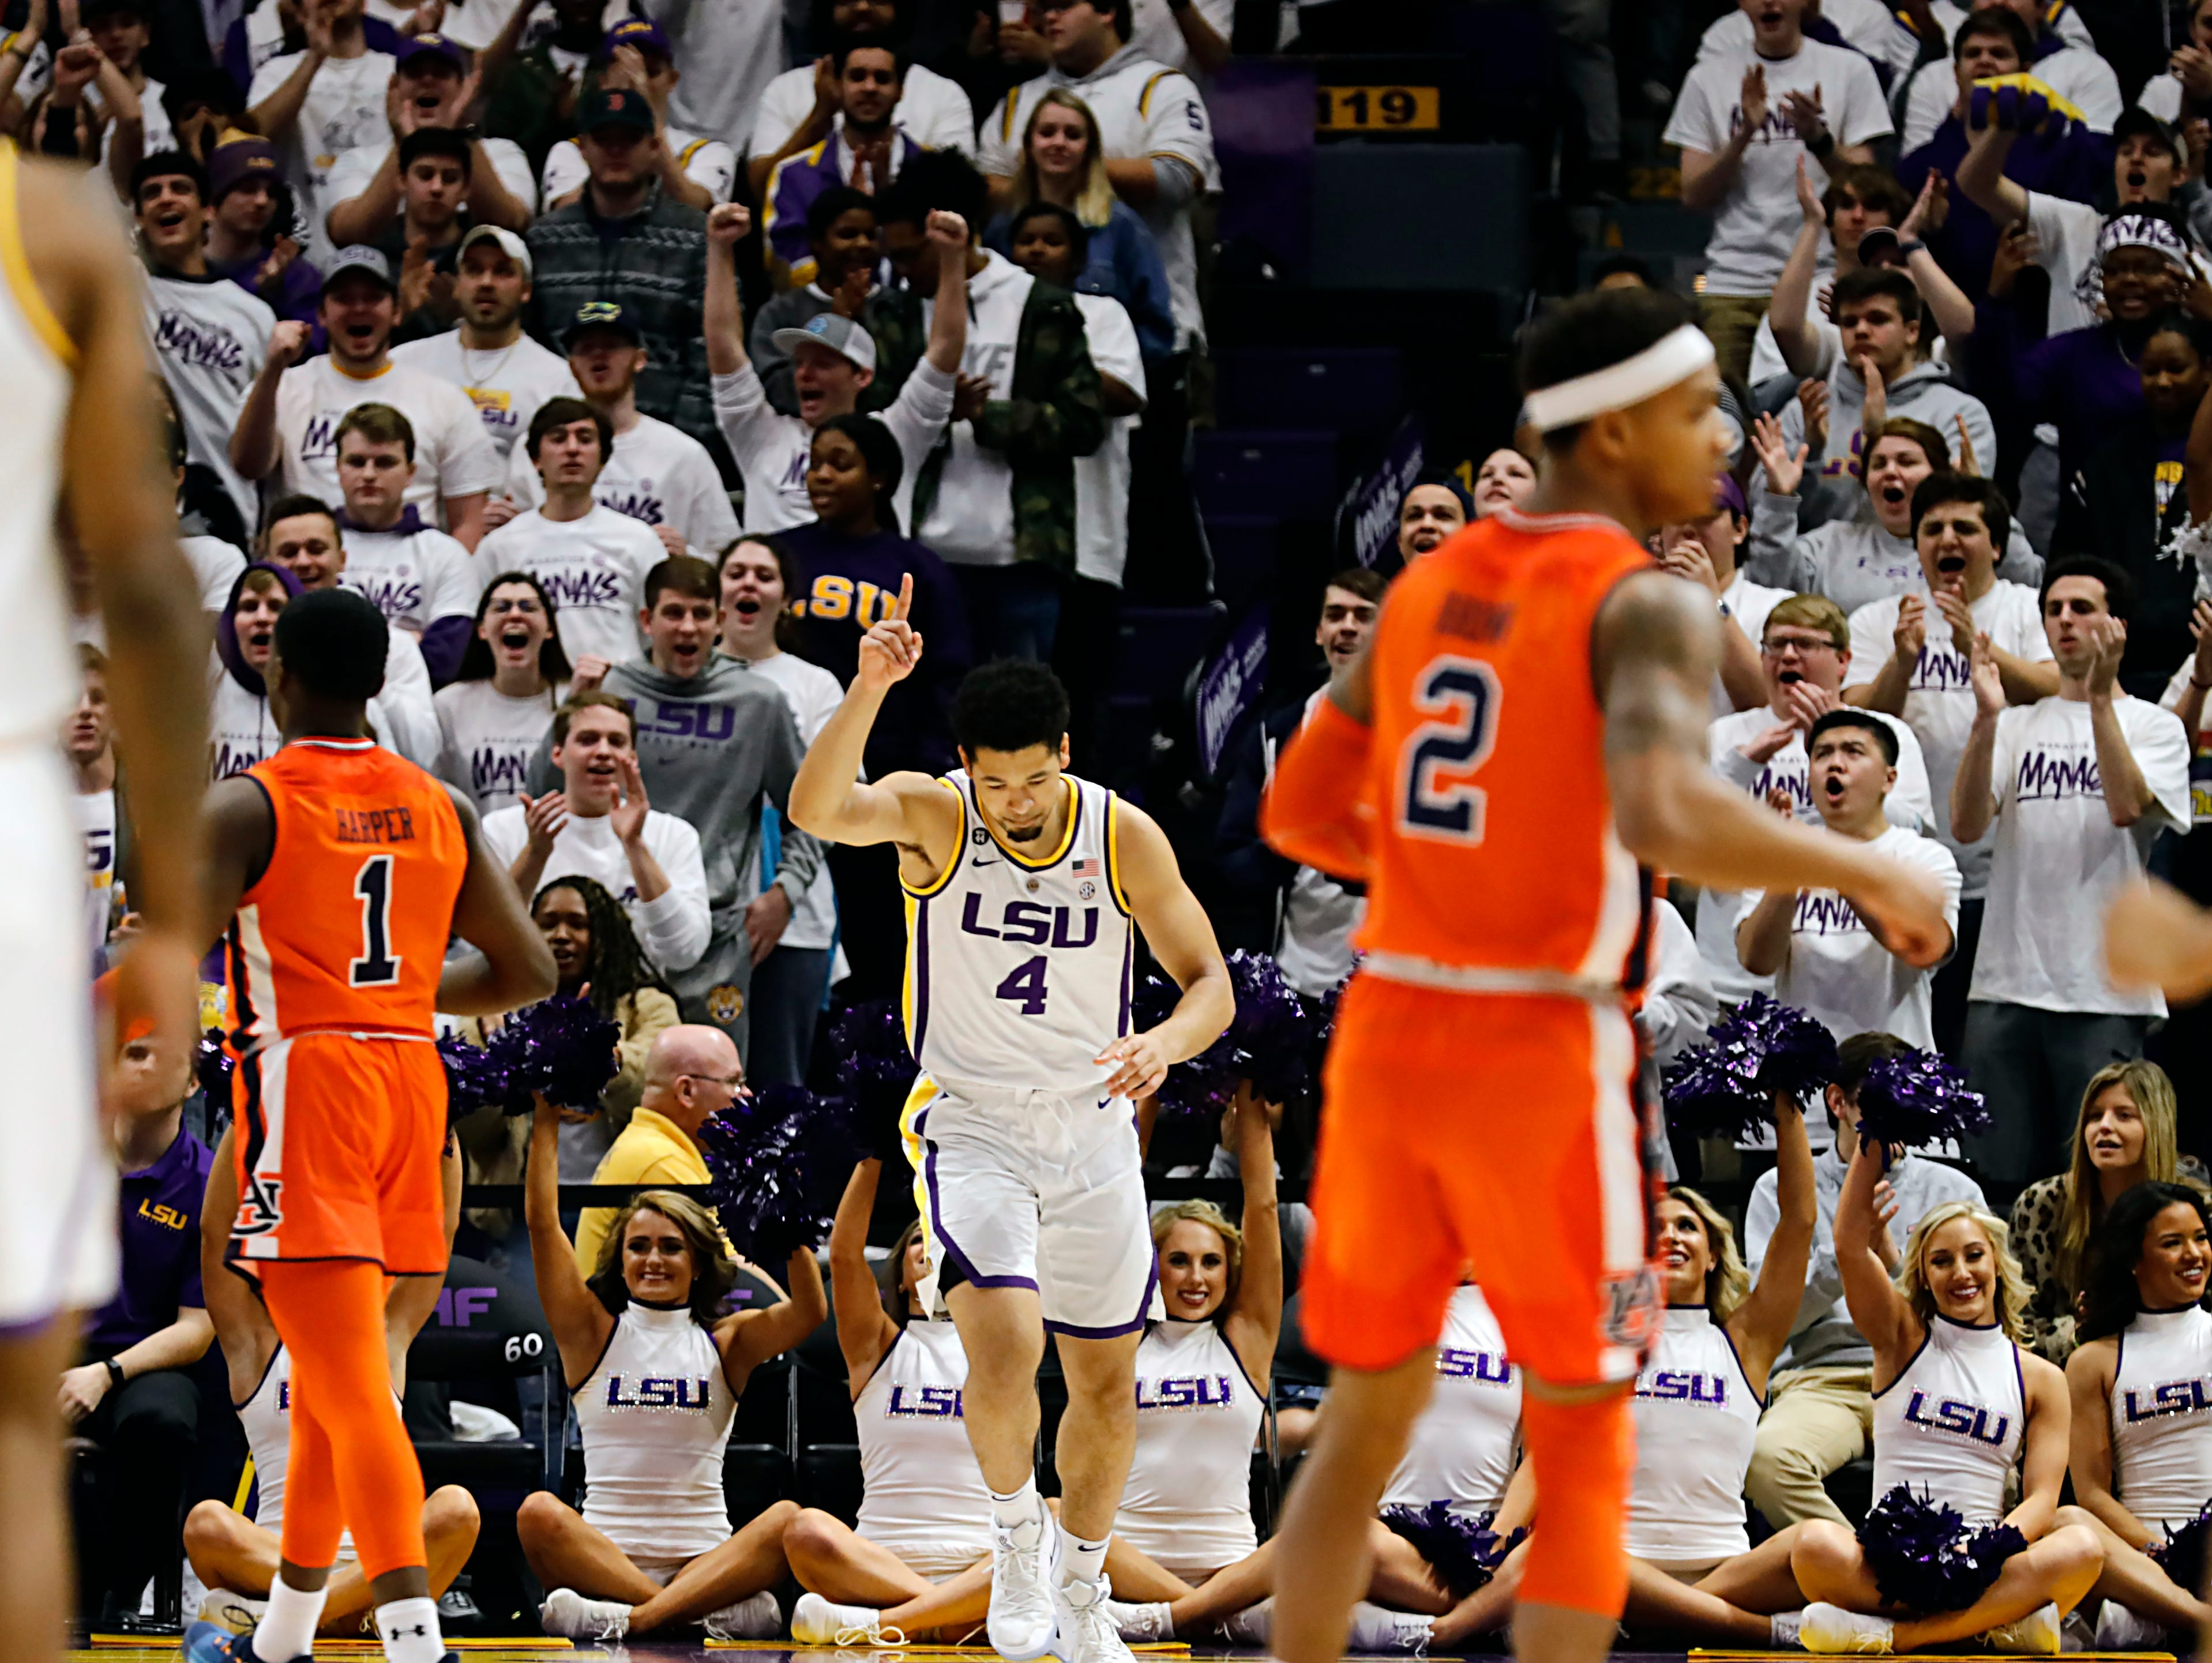 Feb 9, 2019; Baton Rouge, LA, USA;  LSU Tigers guard Skylar Mays (4) reacts to making a 2 point shot against Auburn Tigers in the first half at Maravich Assembly Center. Mandatory Credit: Stephen Lew-USA TODAY Sports